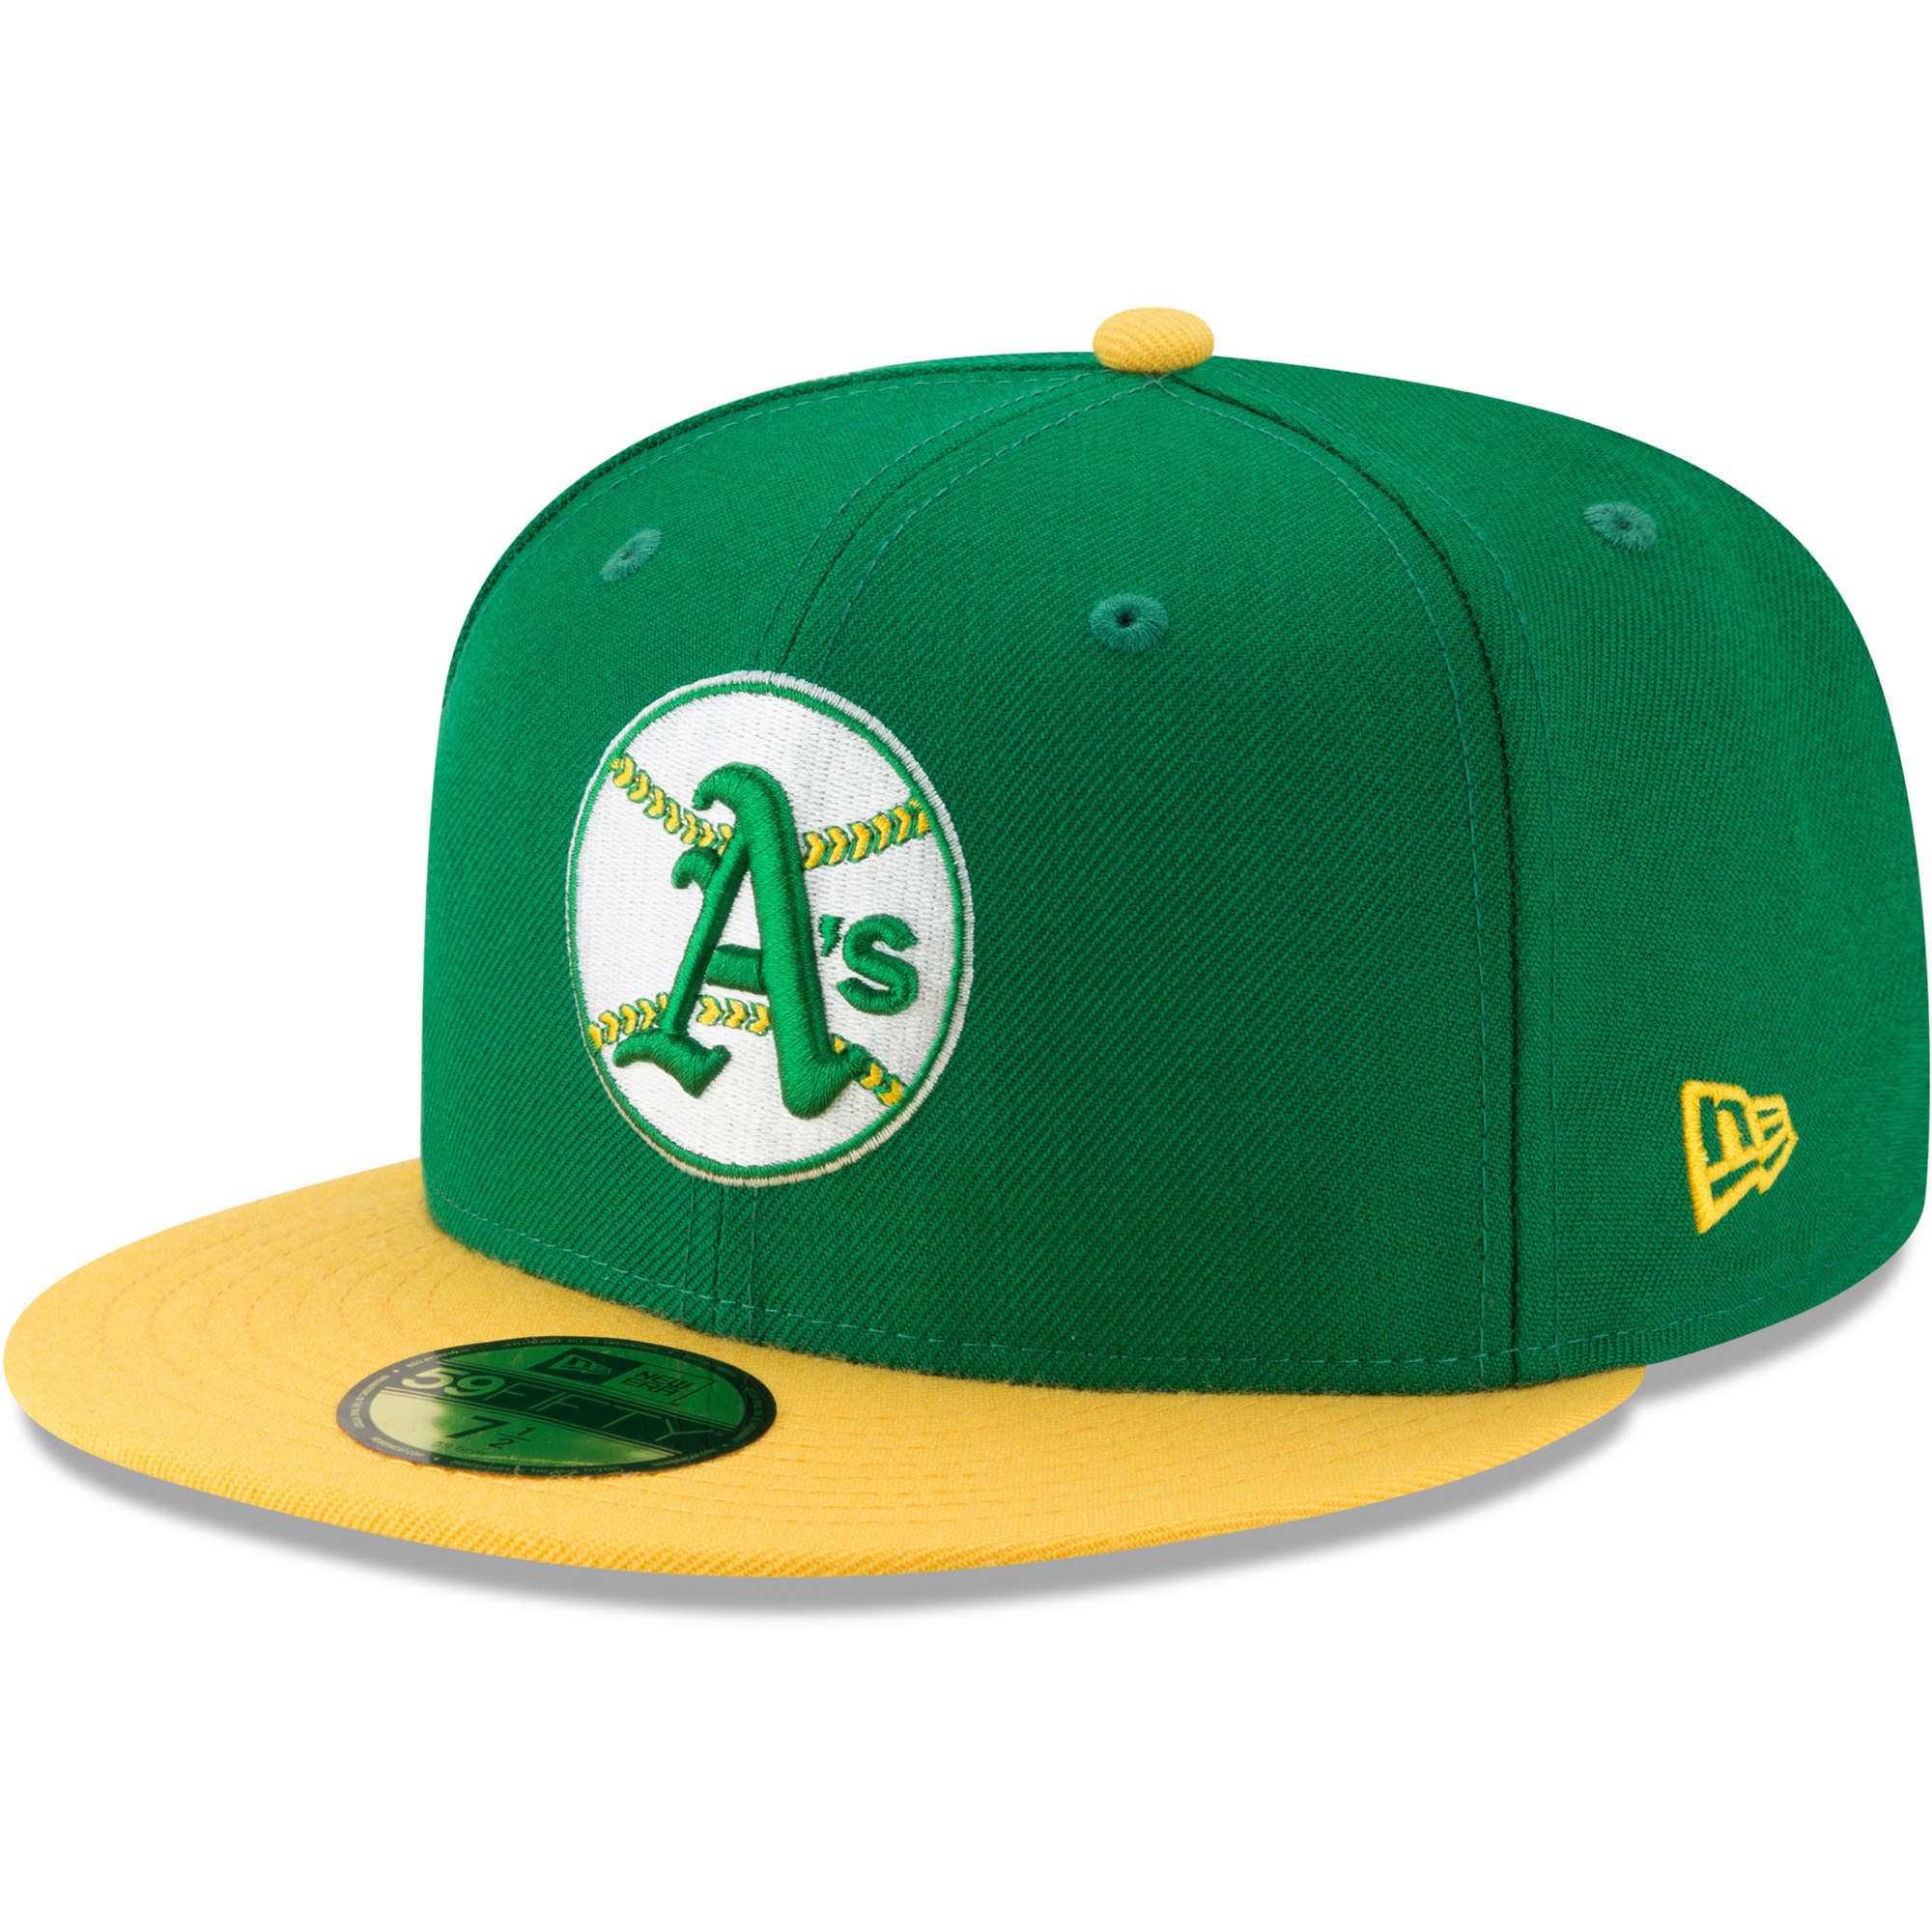 Oakland Athletics New Era Cooperstown Collection Alt Logo Pack 59FIFTY Fitted Hat - Green